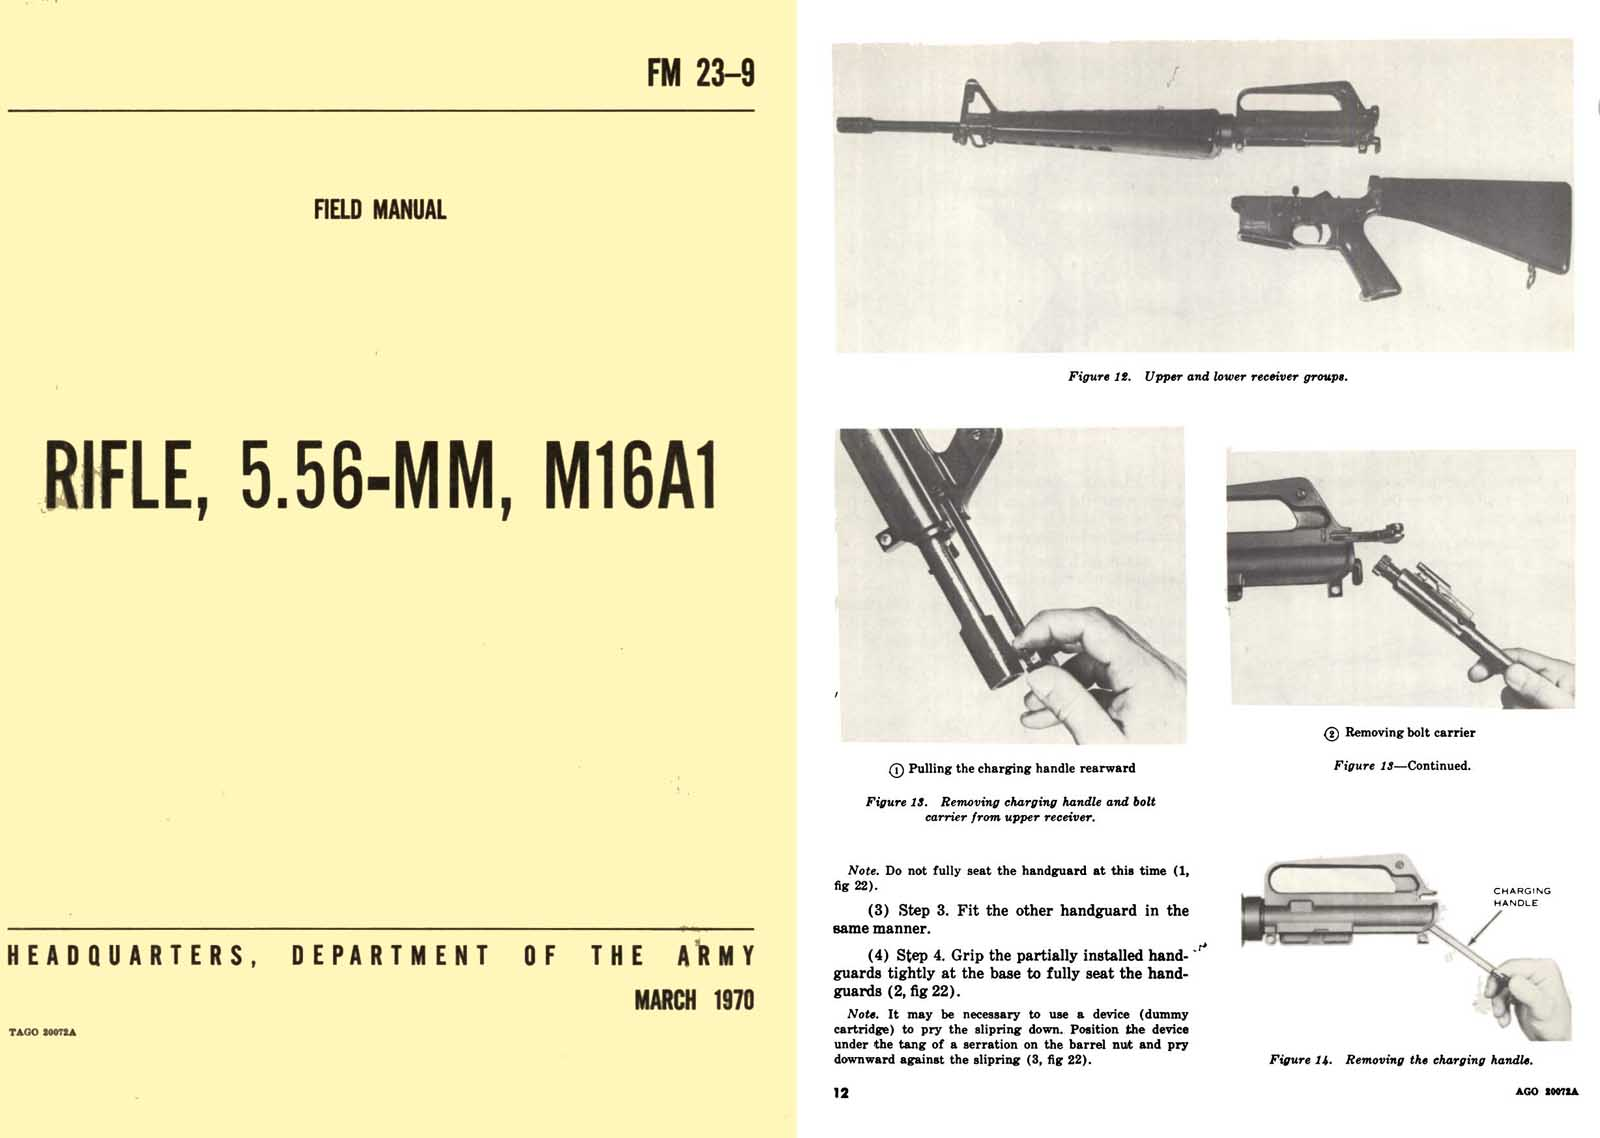 M16A1 5.56MM 1970 Rifle Field Manual FM 23-9